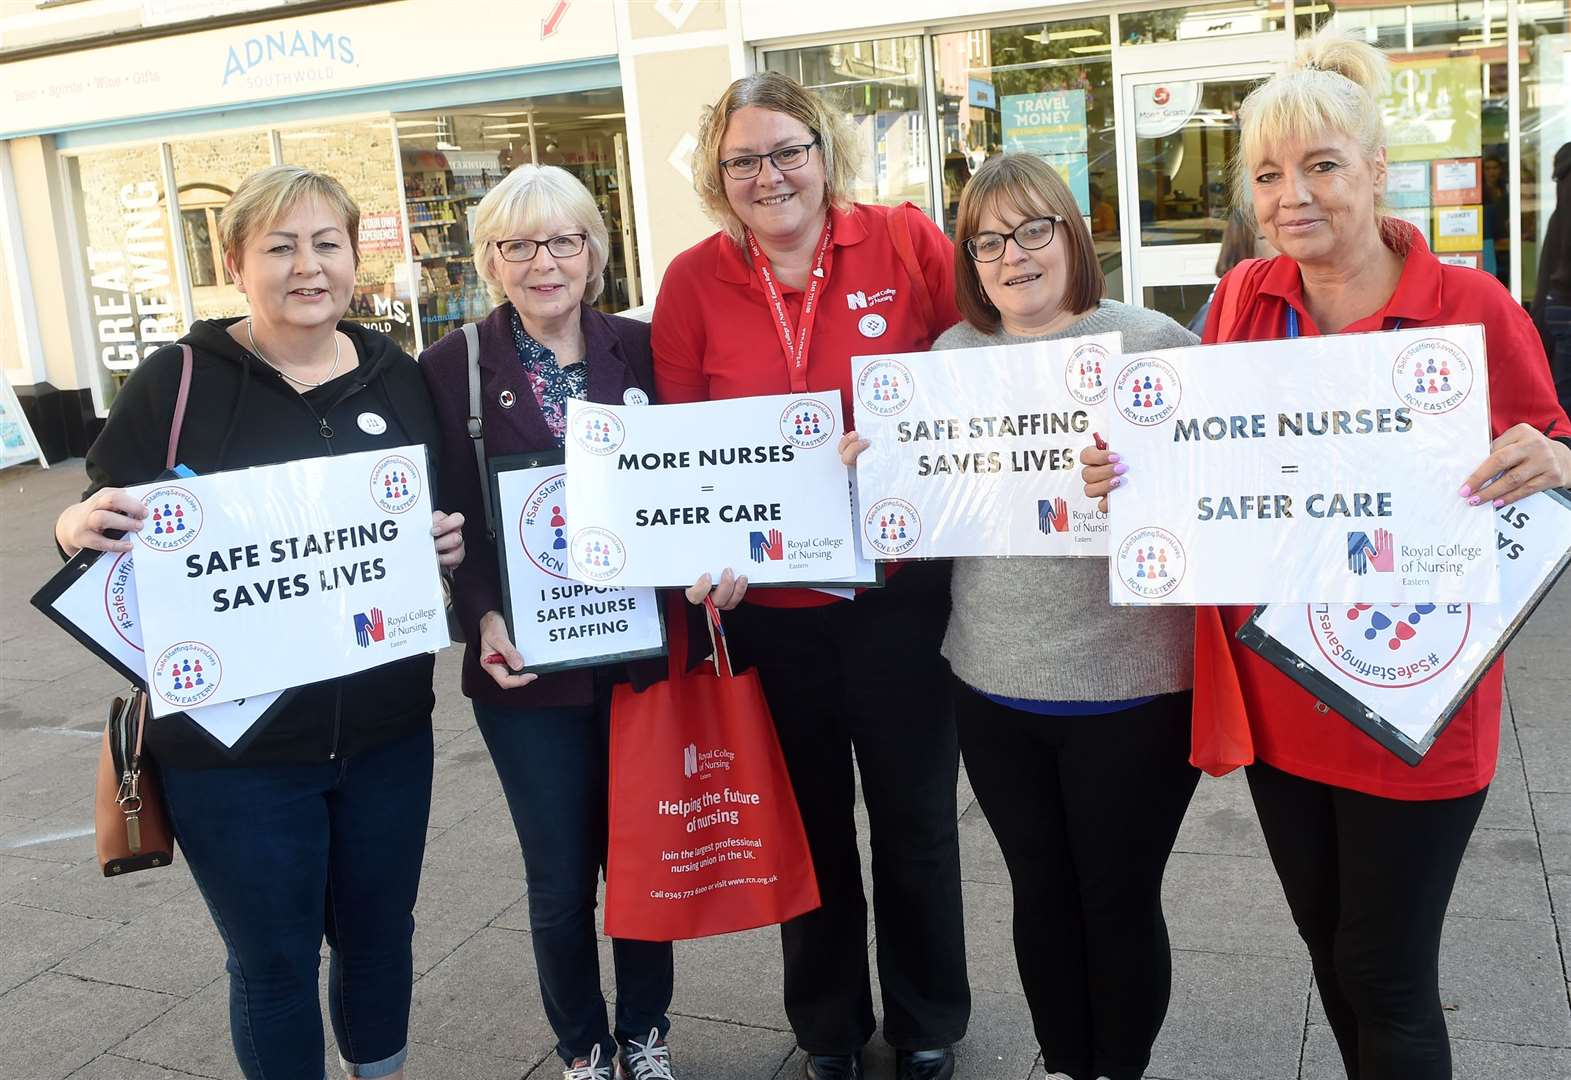 Why nurses were protesting today in Bury St Edmunds